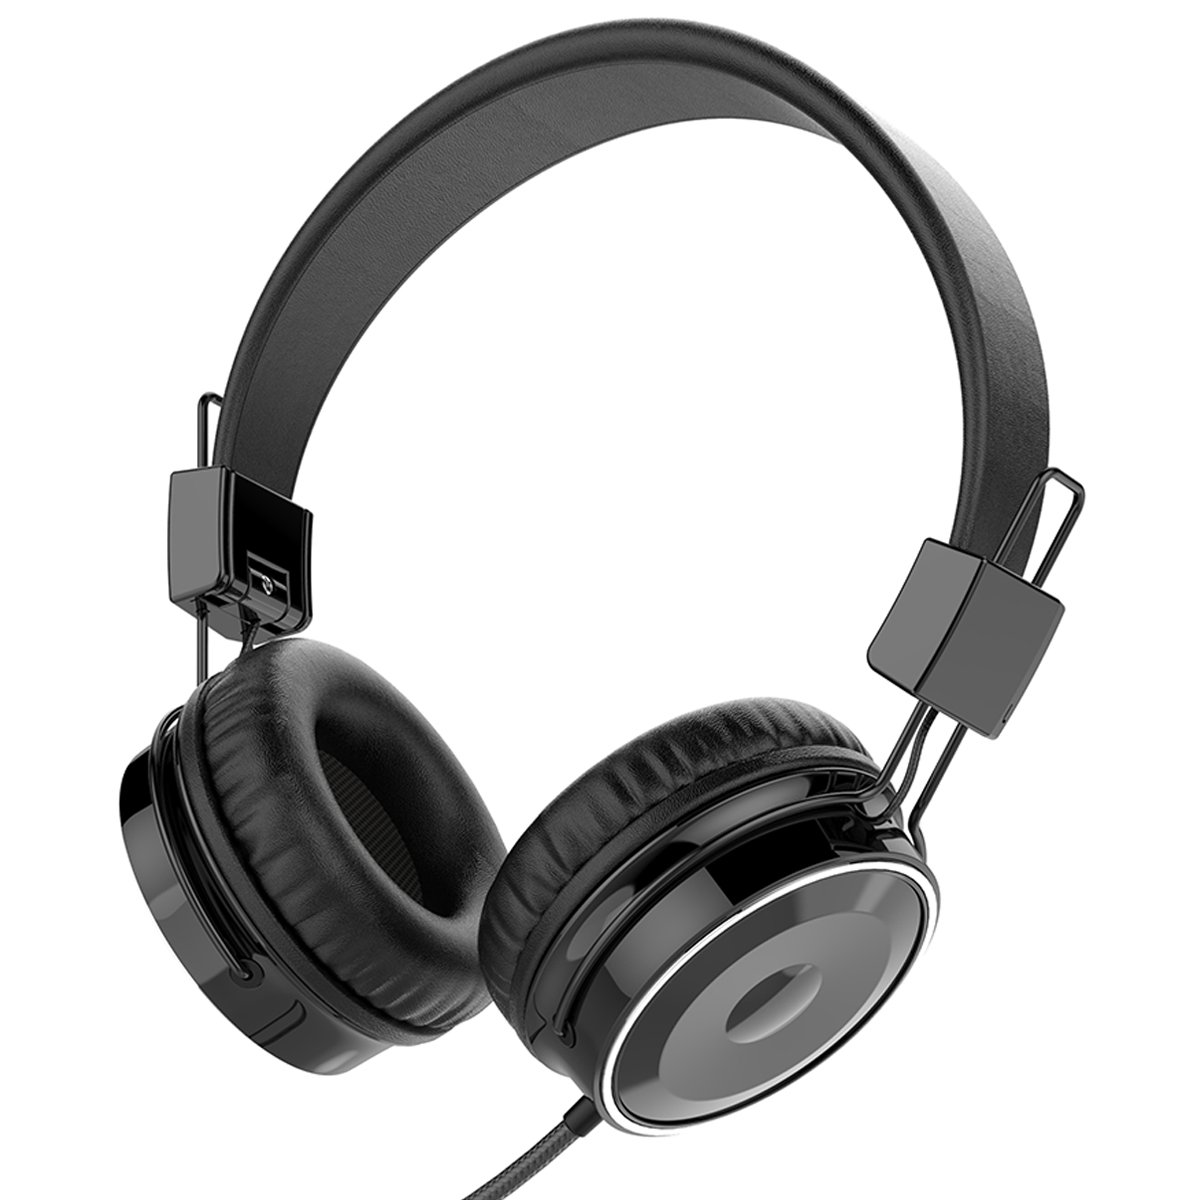 Baseman Wired Stereo Foldable Over-ear Headphones Strong Low Bass Earphones with Microphone 3.5mm Headsets for Cellphones iphone Laptop Tablet Mp4 Mp3 PC Macbook (Black)